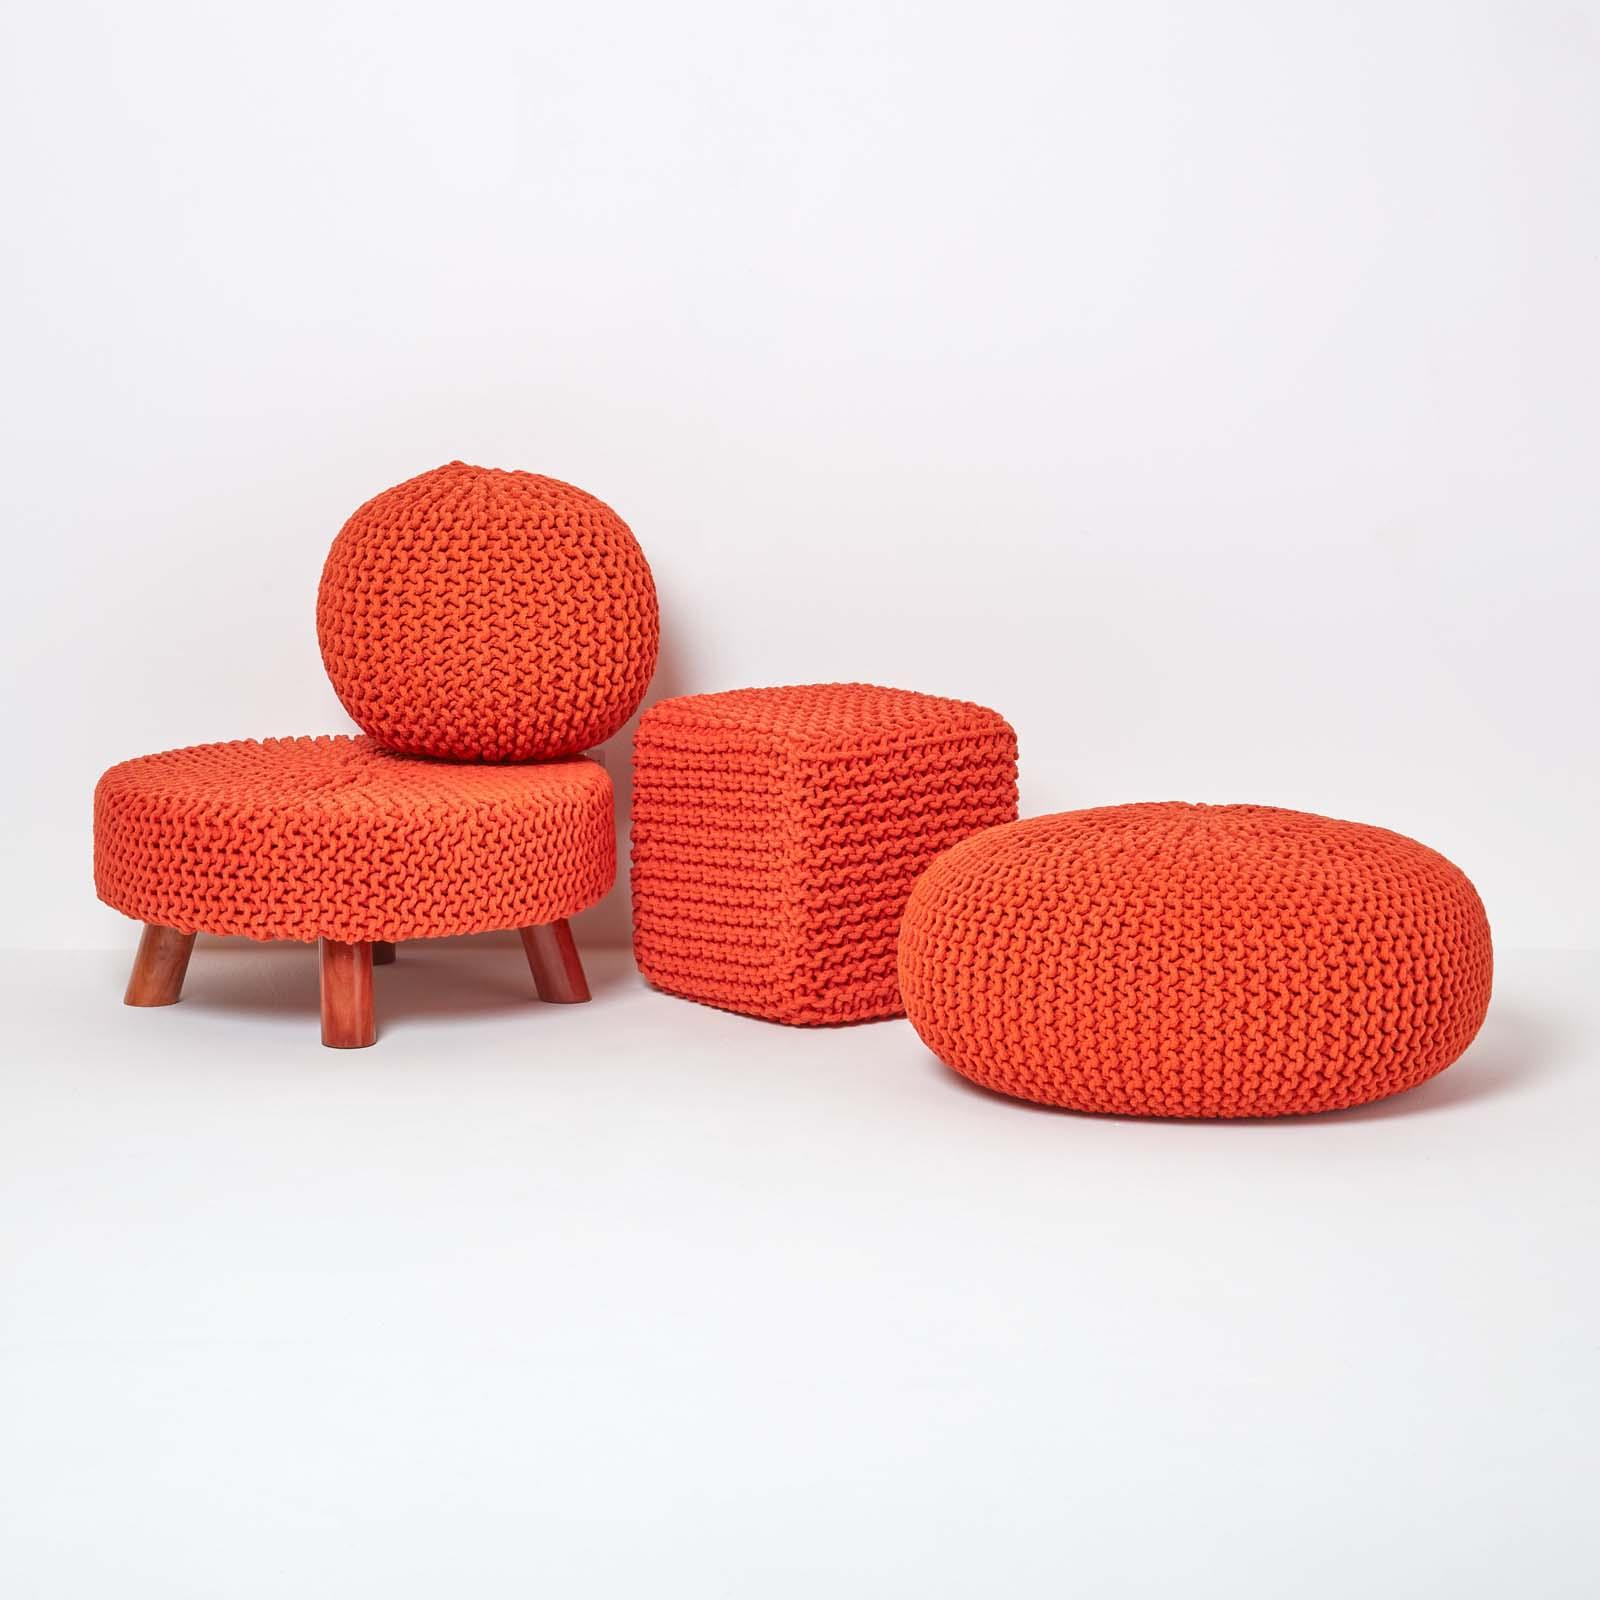 Hand-Knitted-100-Cotton-Pouffes-Round-Sphere-Or-Cube-Square-Chunky-Footstools thumbnail 120